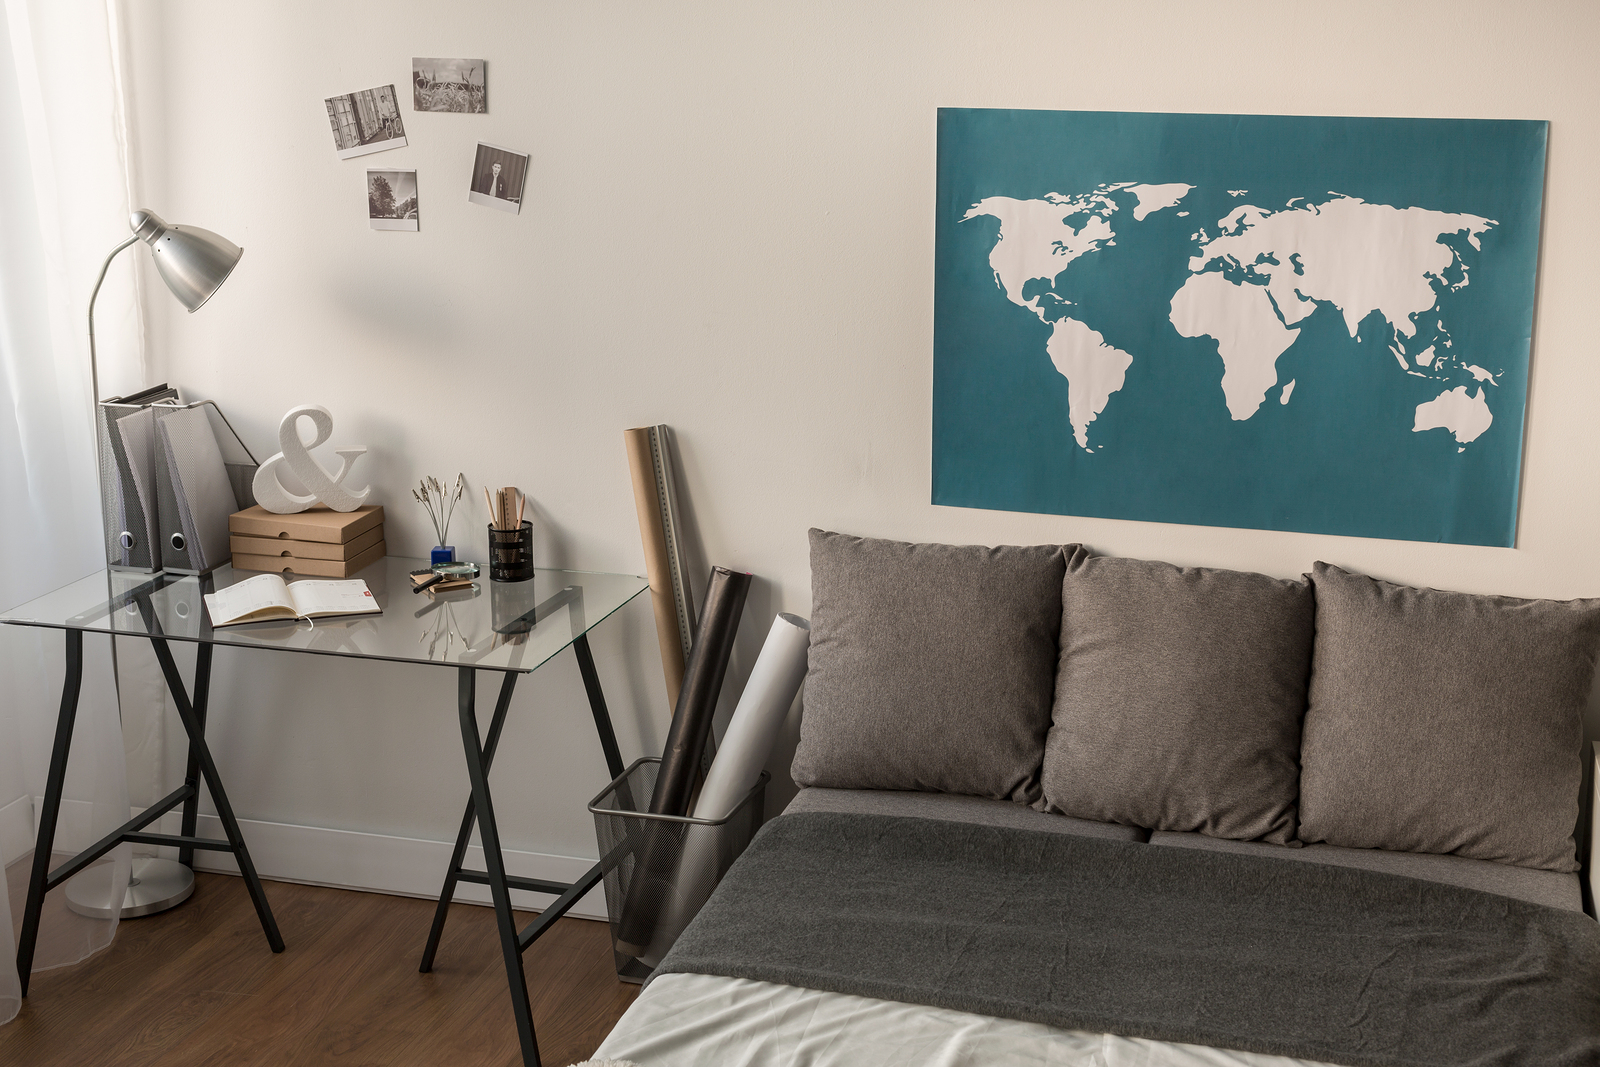 What Are the Best Ways of Creating Cool Dorm Wall Decor on ... on Room Wall Decor id=52254